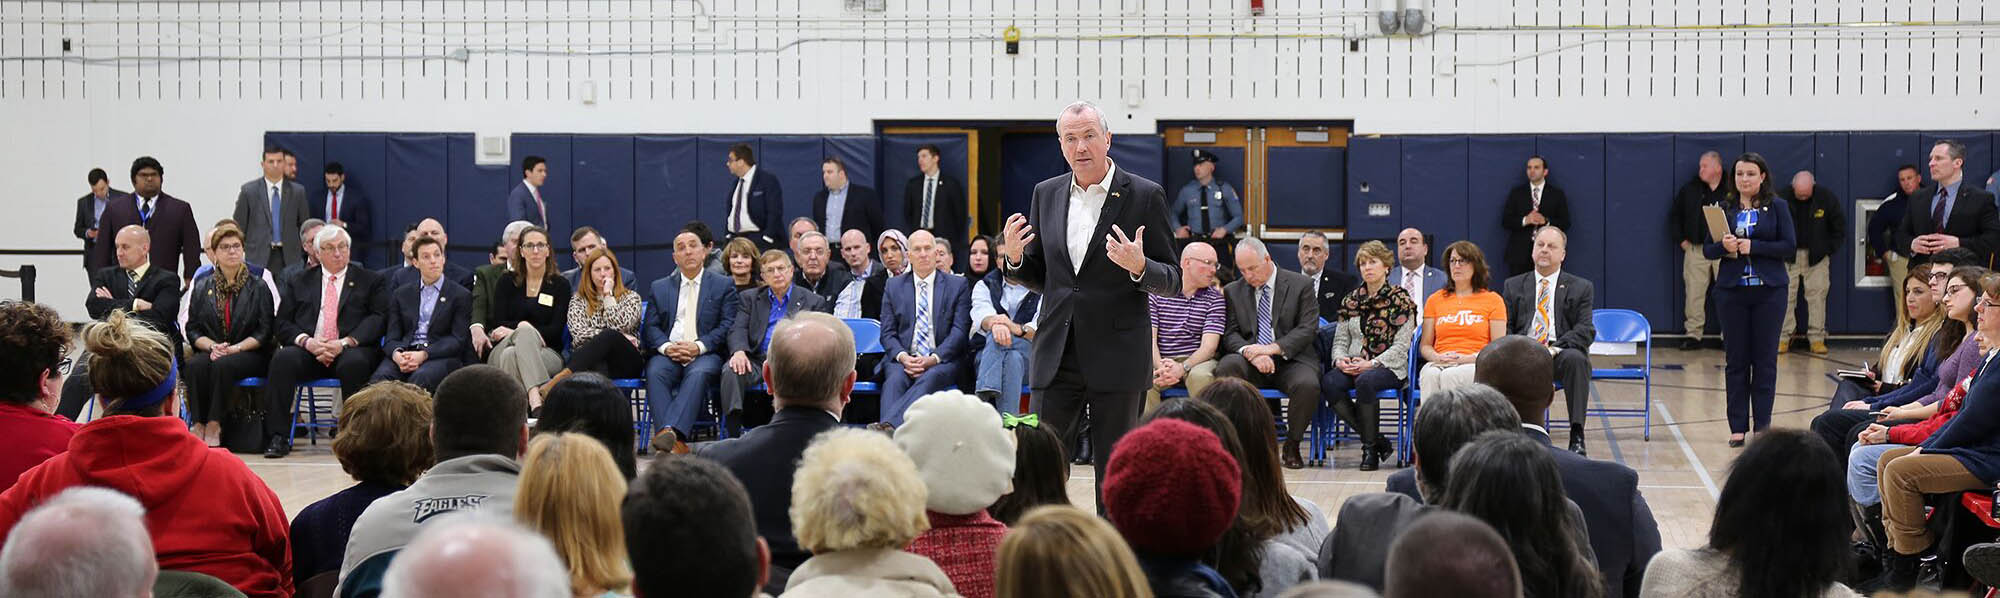 Photo: Phil Murphy speaking at a Town Hall